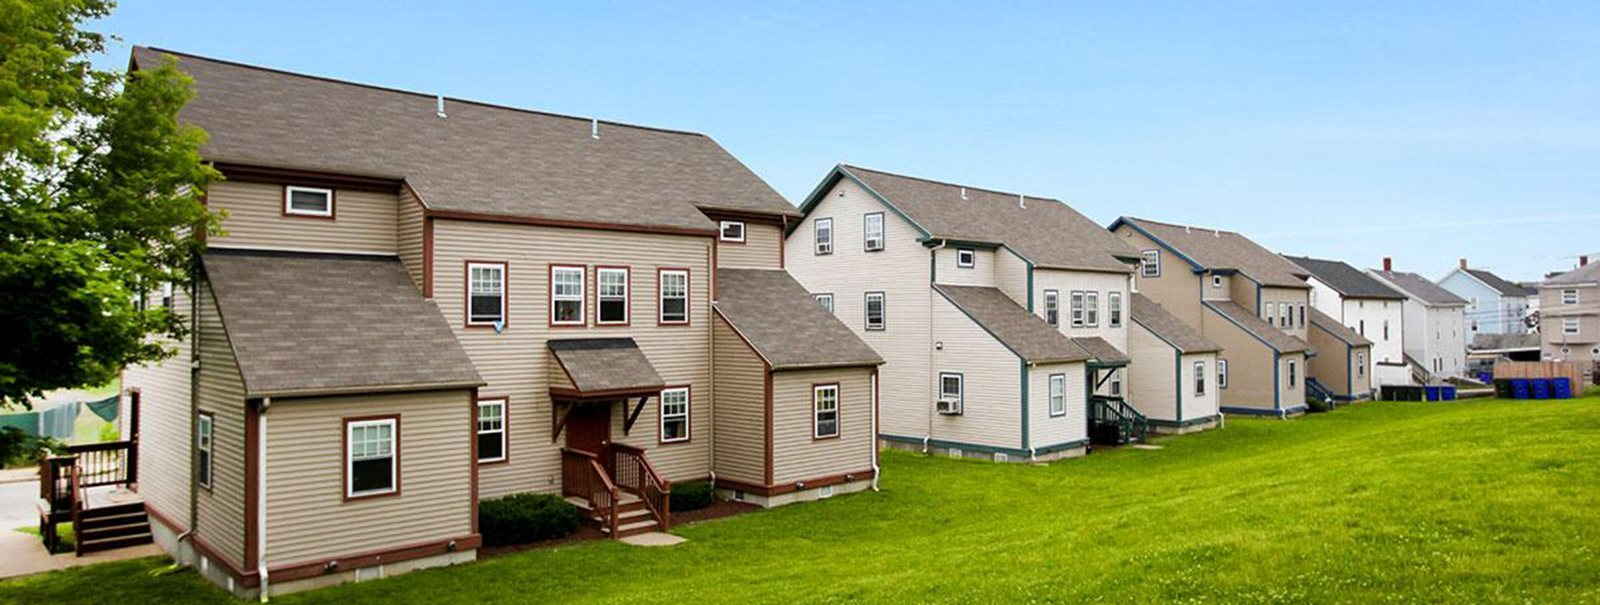 Easterly Shores and Niagara Court Apartments | Apartments in